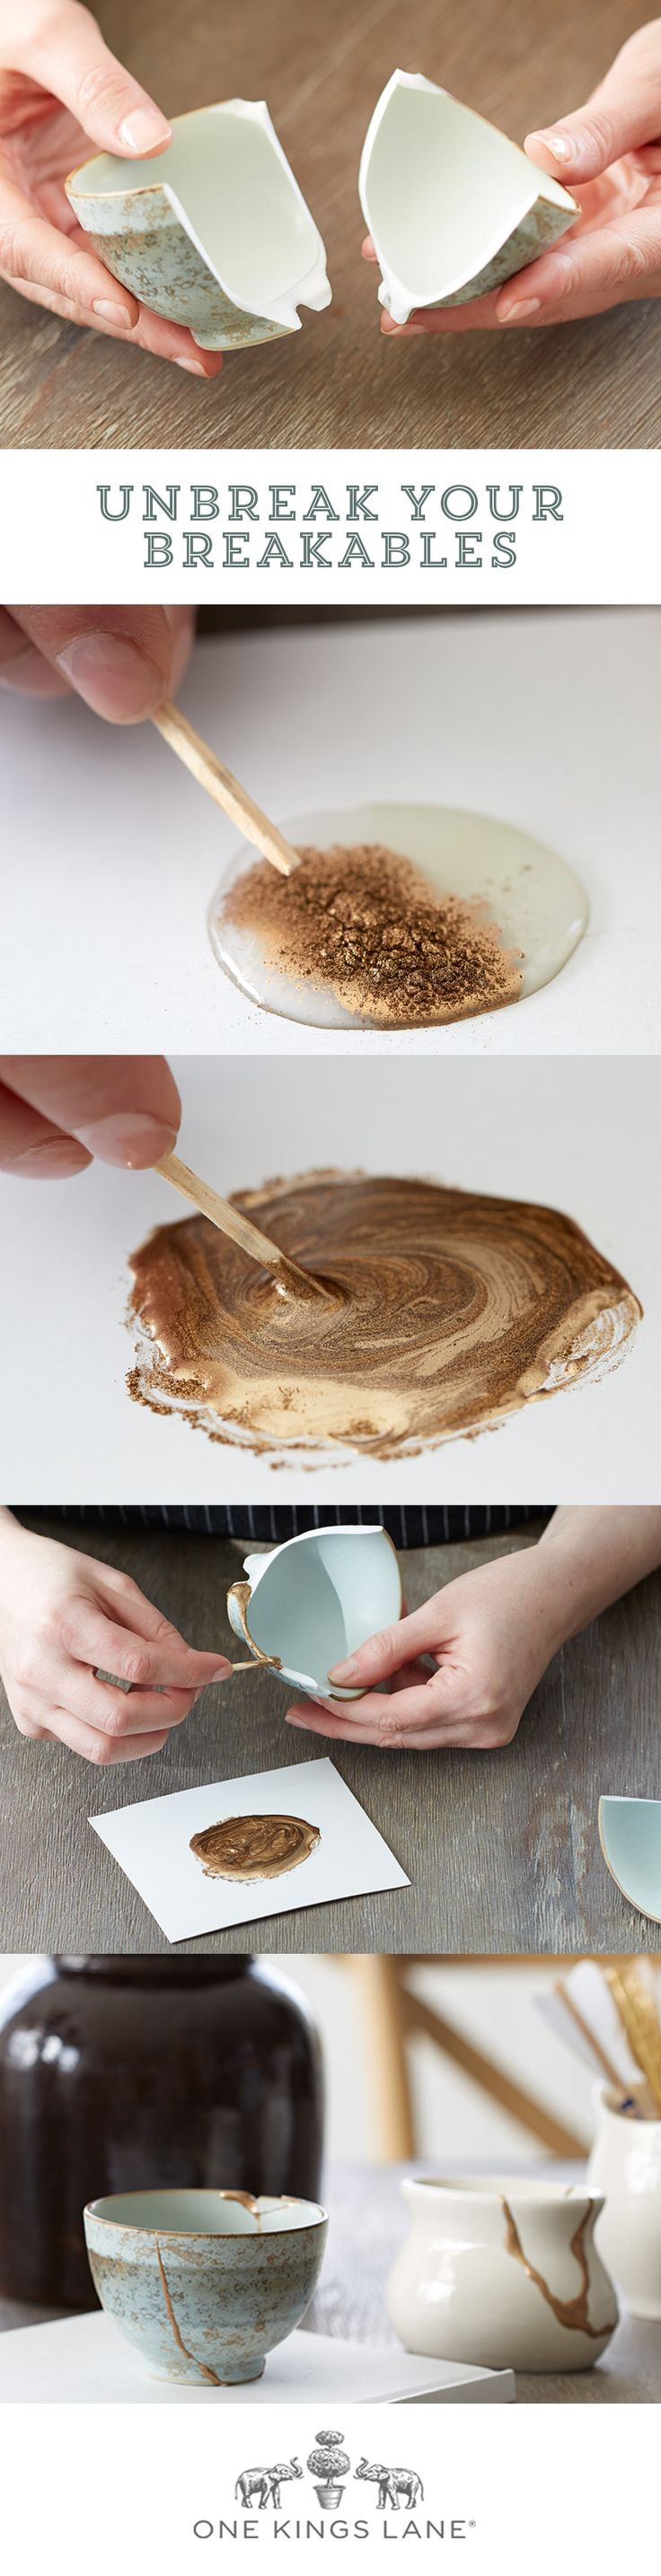 Learn our 3 EASY steps to fixing your broken ceramics! Imitation Kintsugi! Love it!